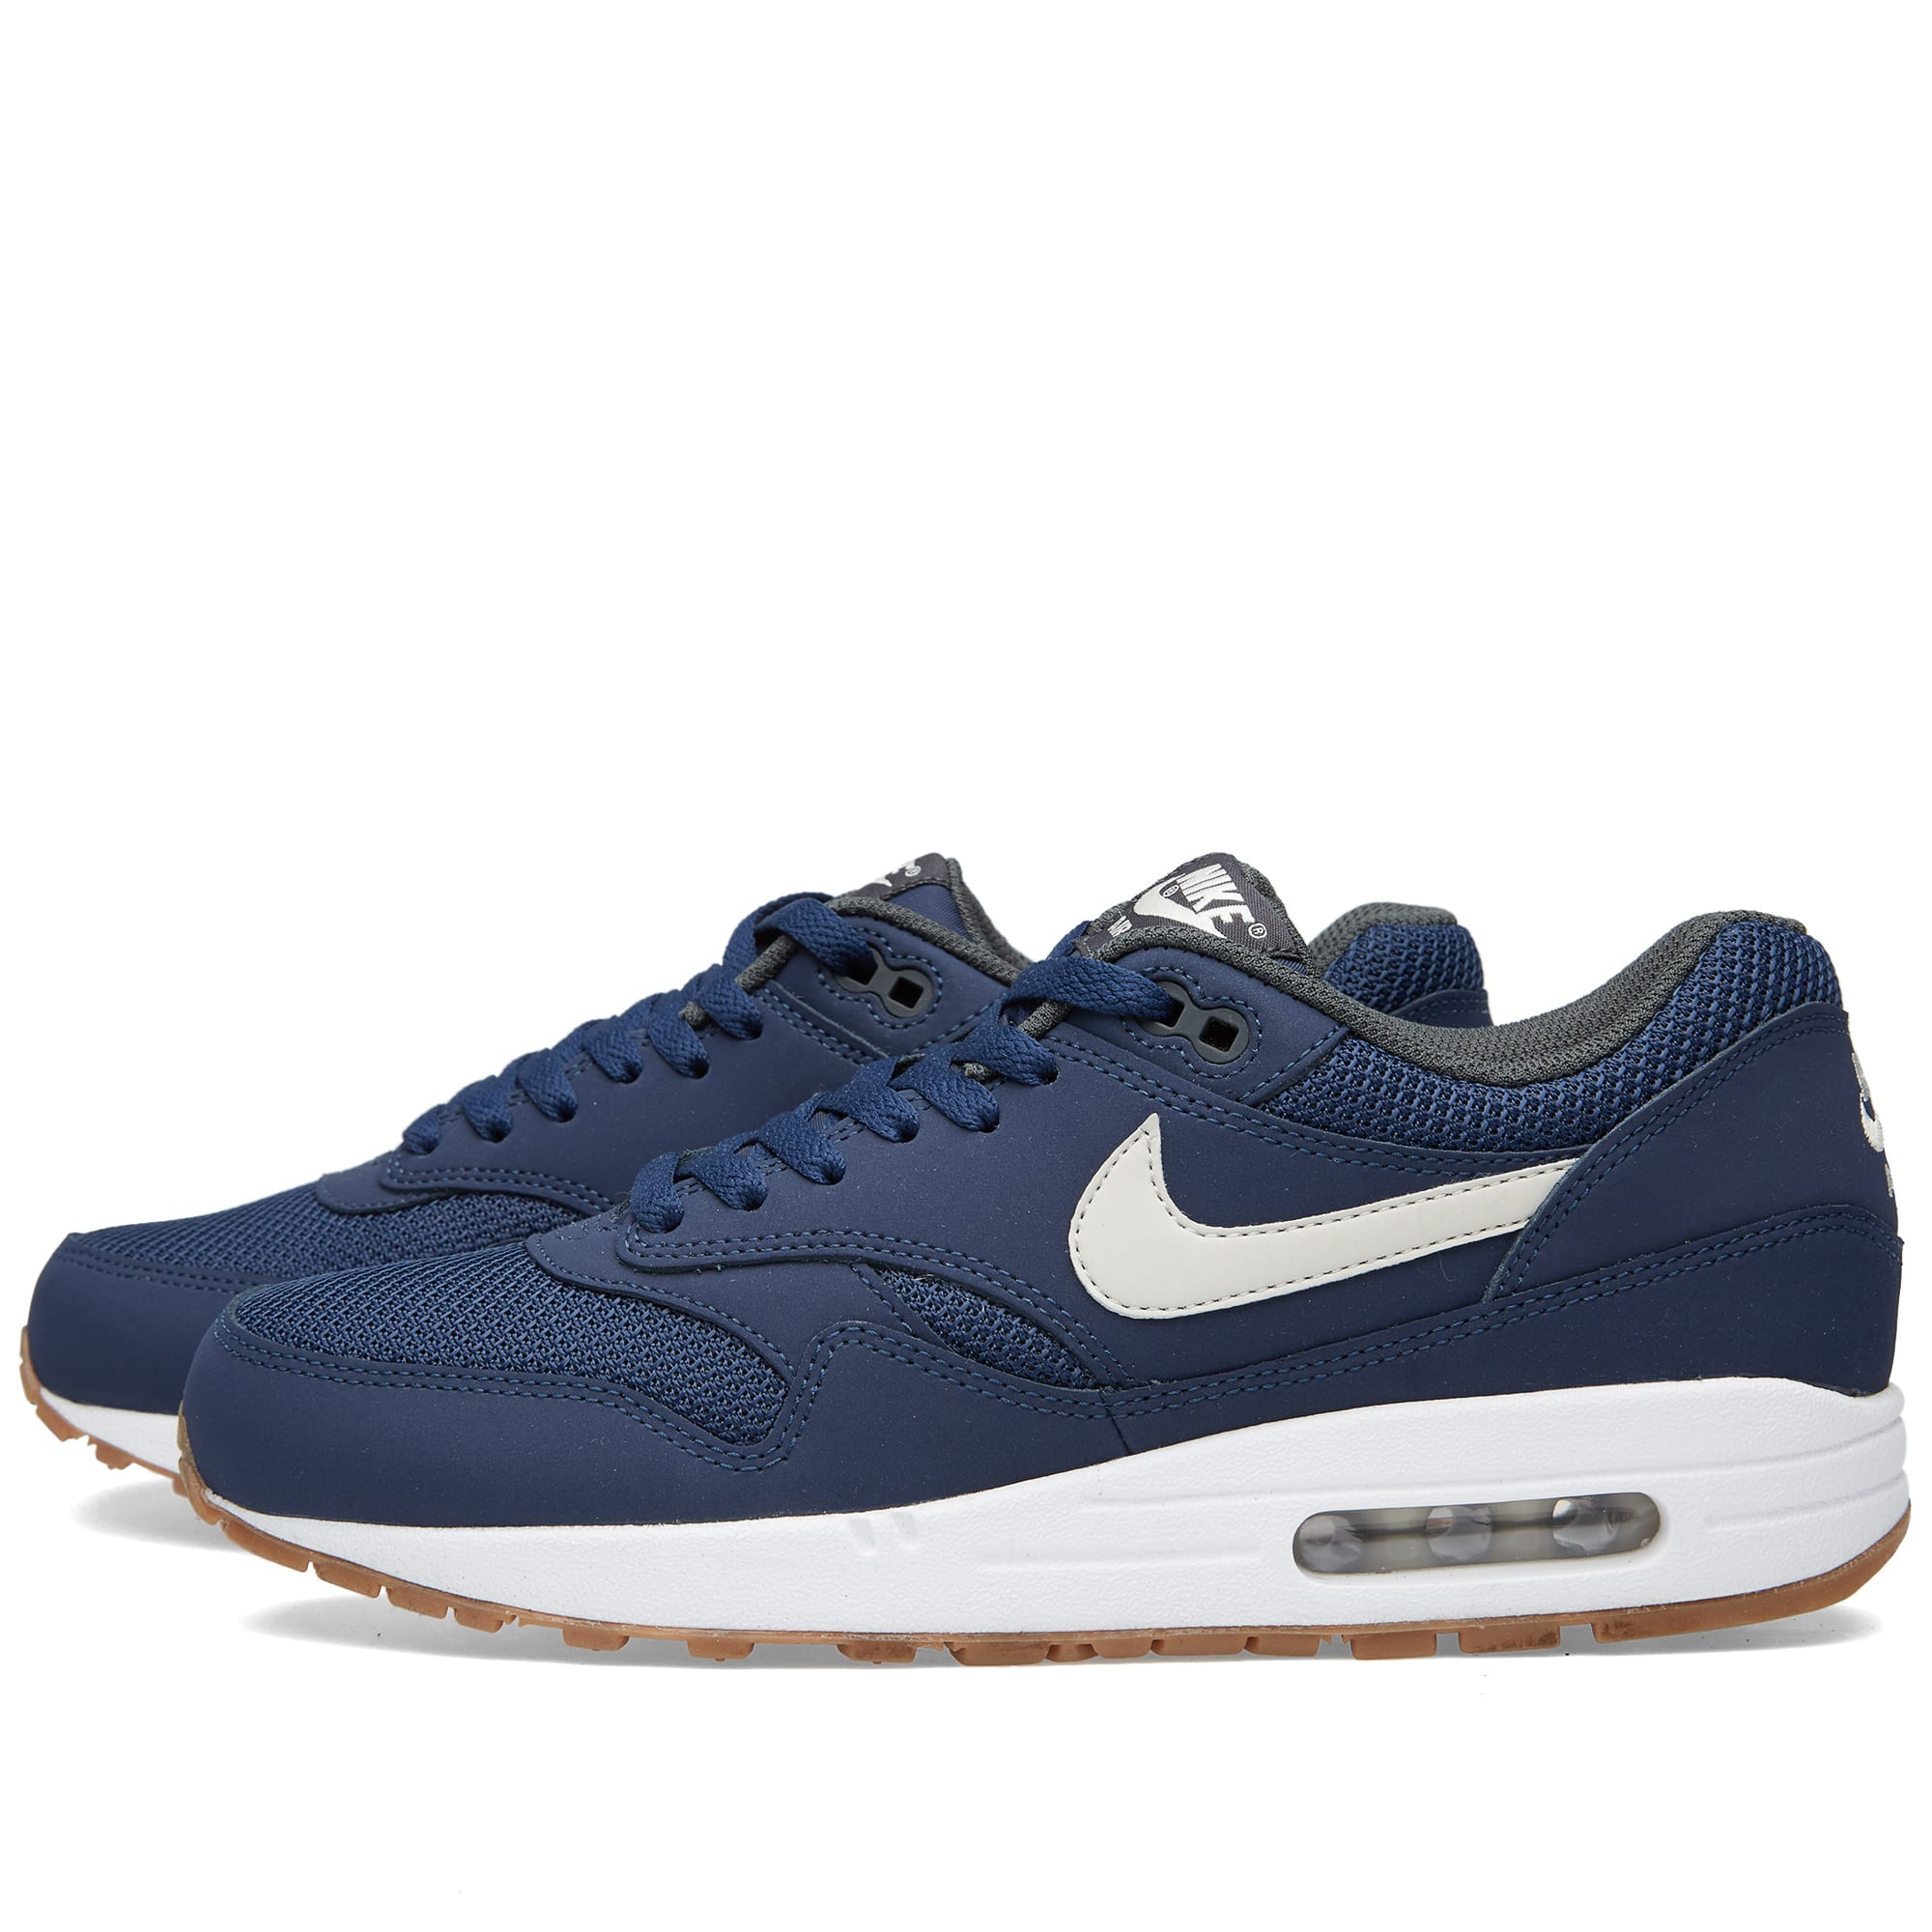 new product 44b66 d7a8c Nike Air Max 1 Essential Midnight Navy   White   END.